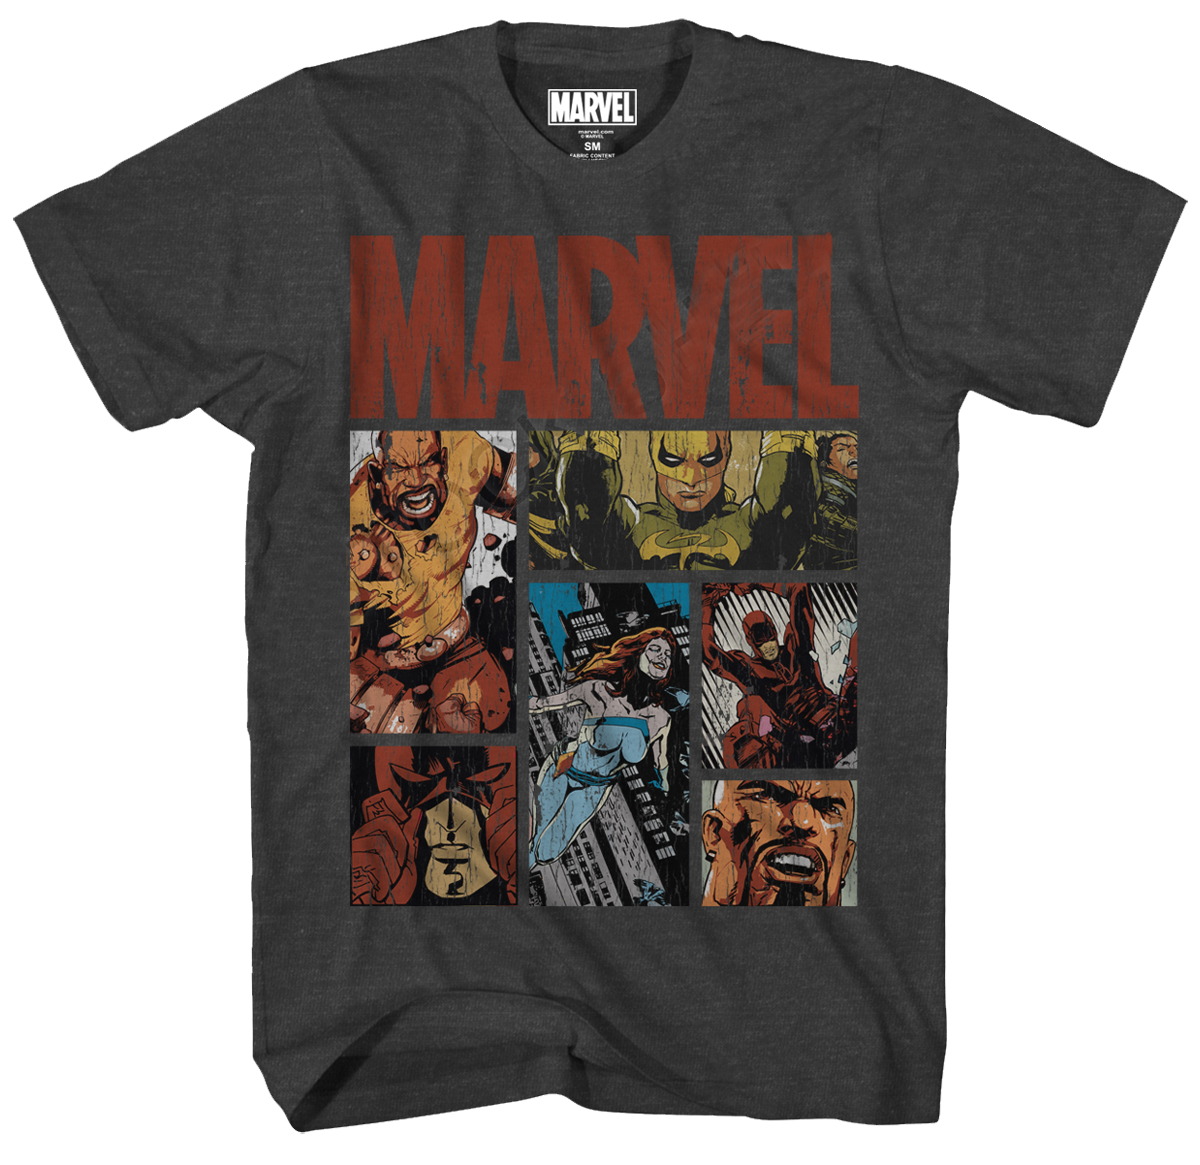 MARVEL HOOD KNIGHTS CHARCOAL HEATHER T/S MED